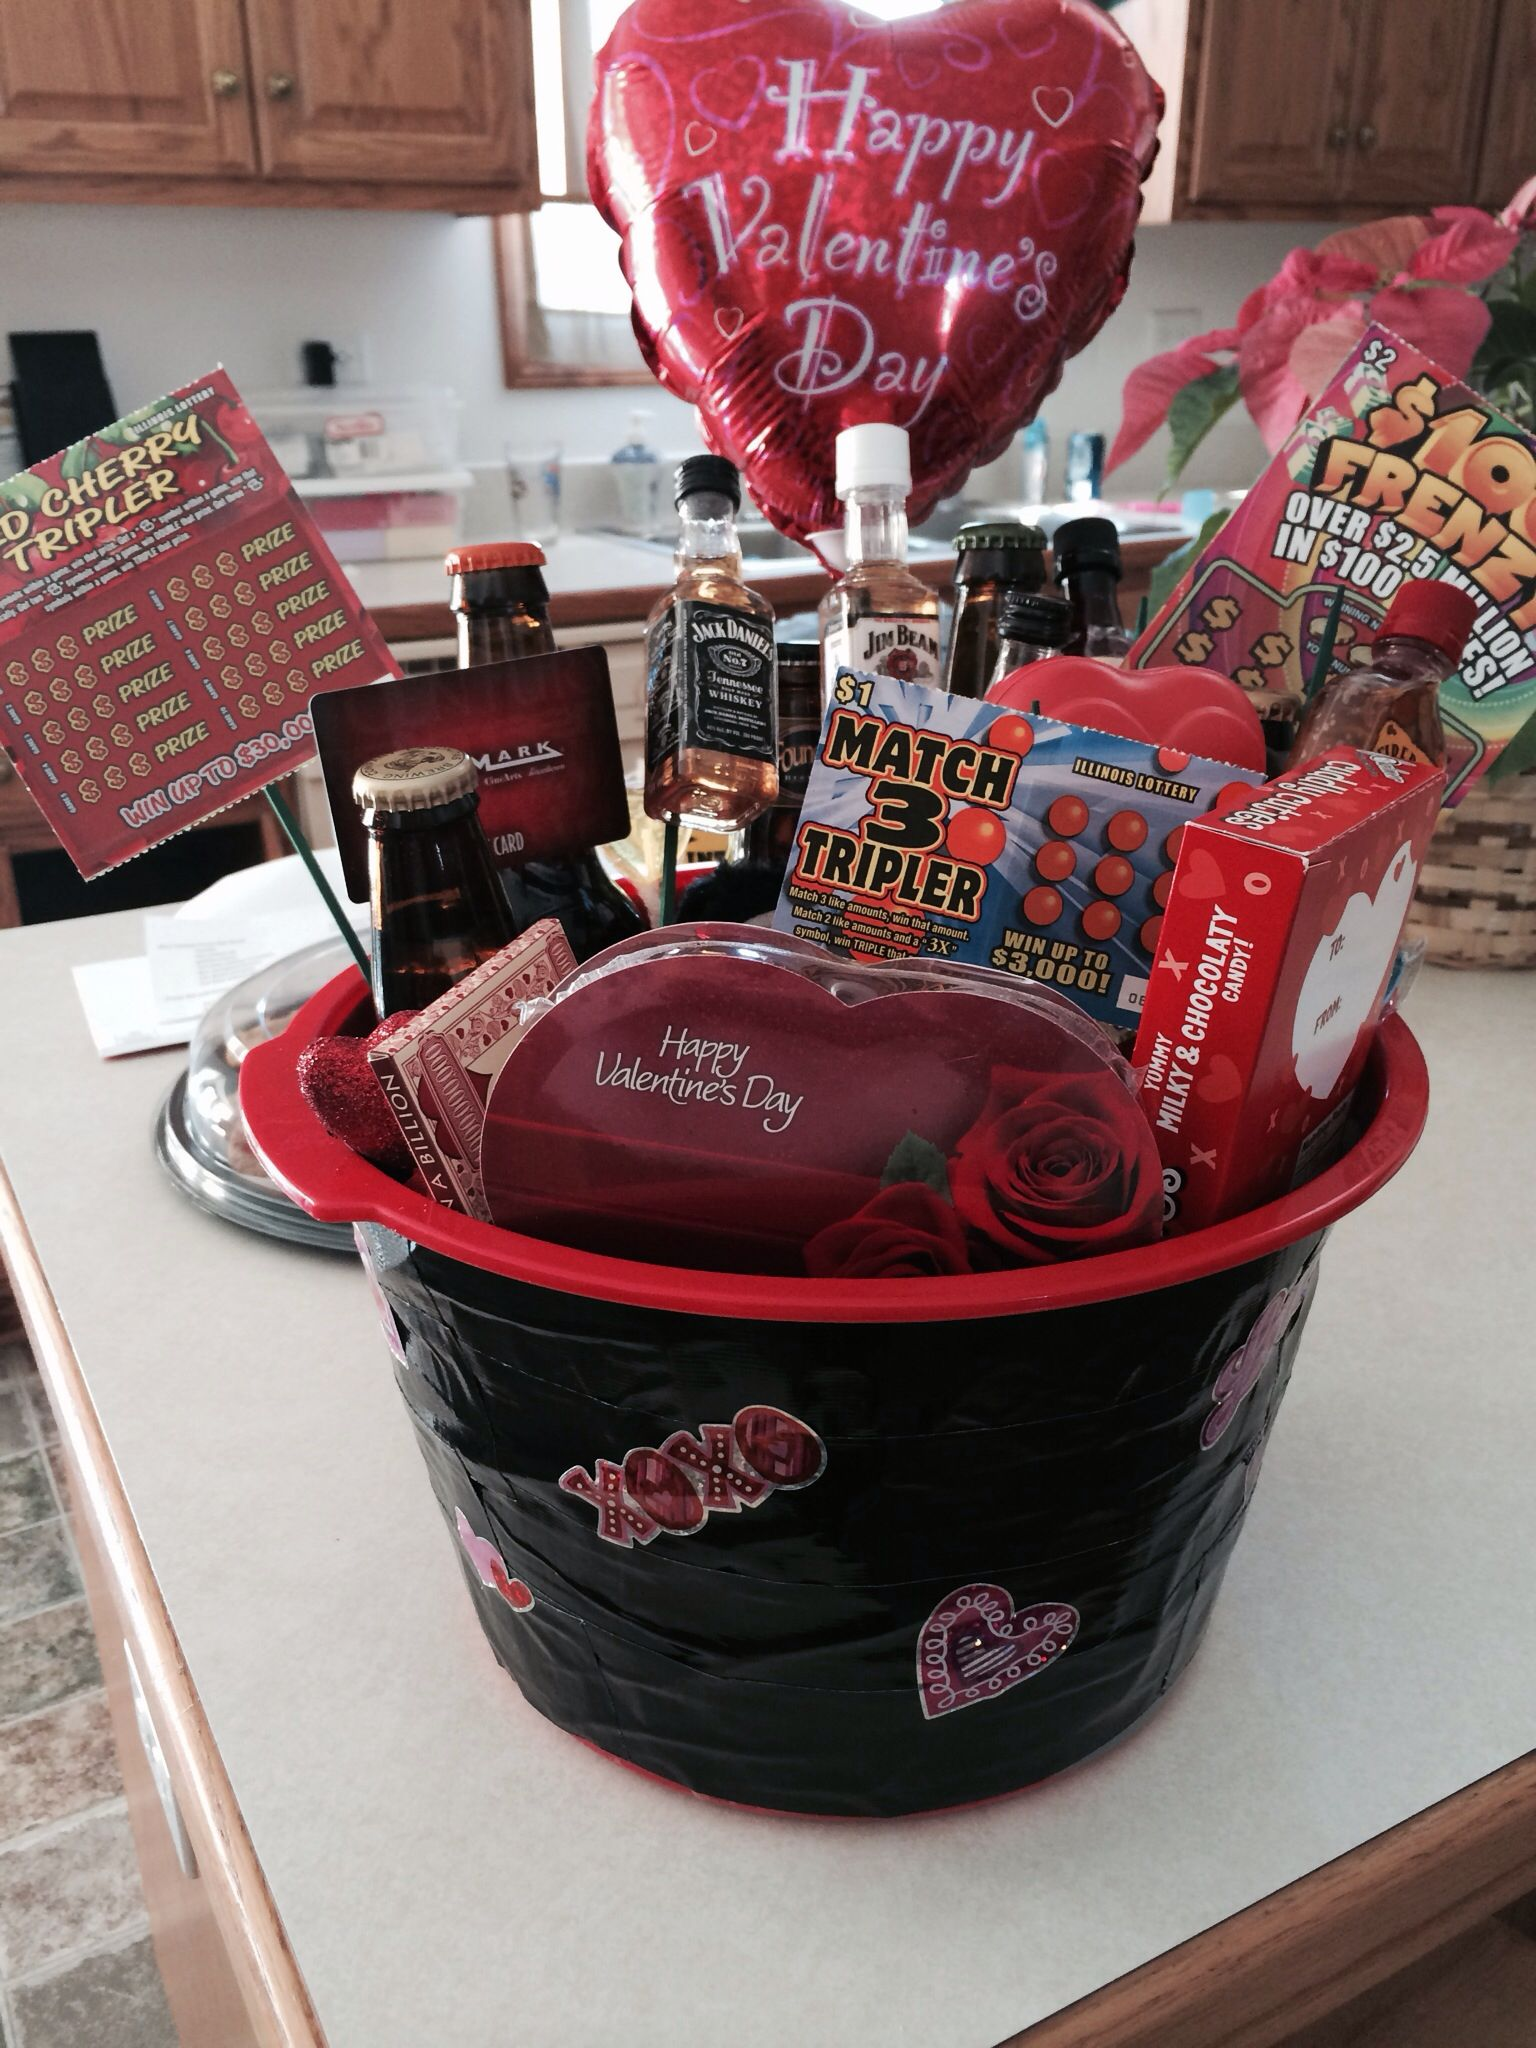 Valentines Day Basket For Him I Used 6 Ipa Beers Different Whiskey Valentines Day Gifts For Him Boyfriends Valentine Gift Baskets Valentines Baskets For Him